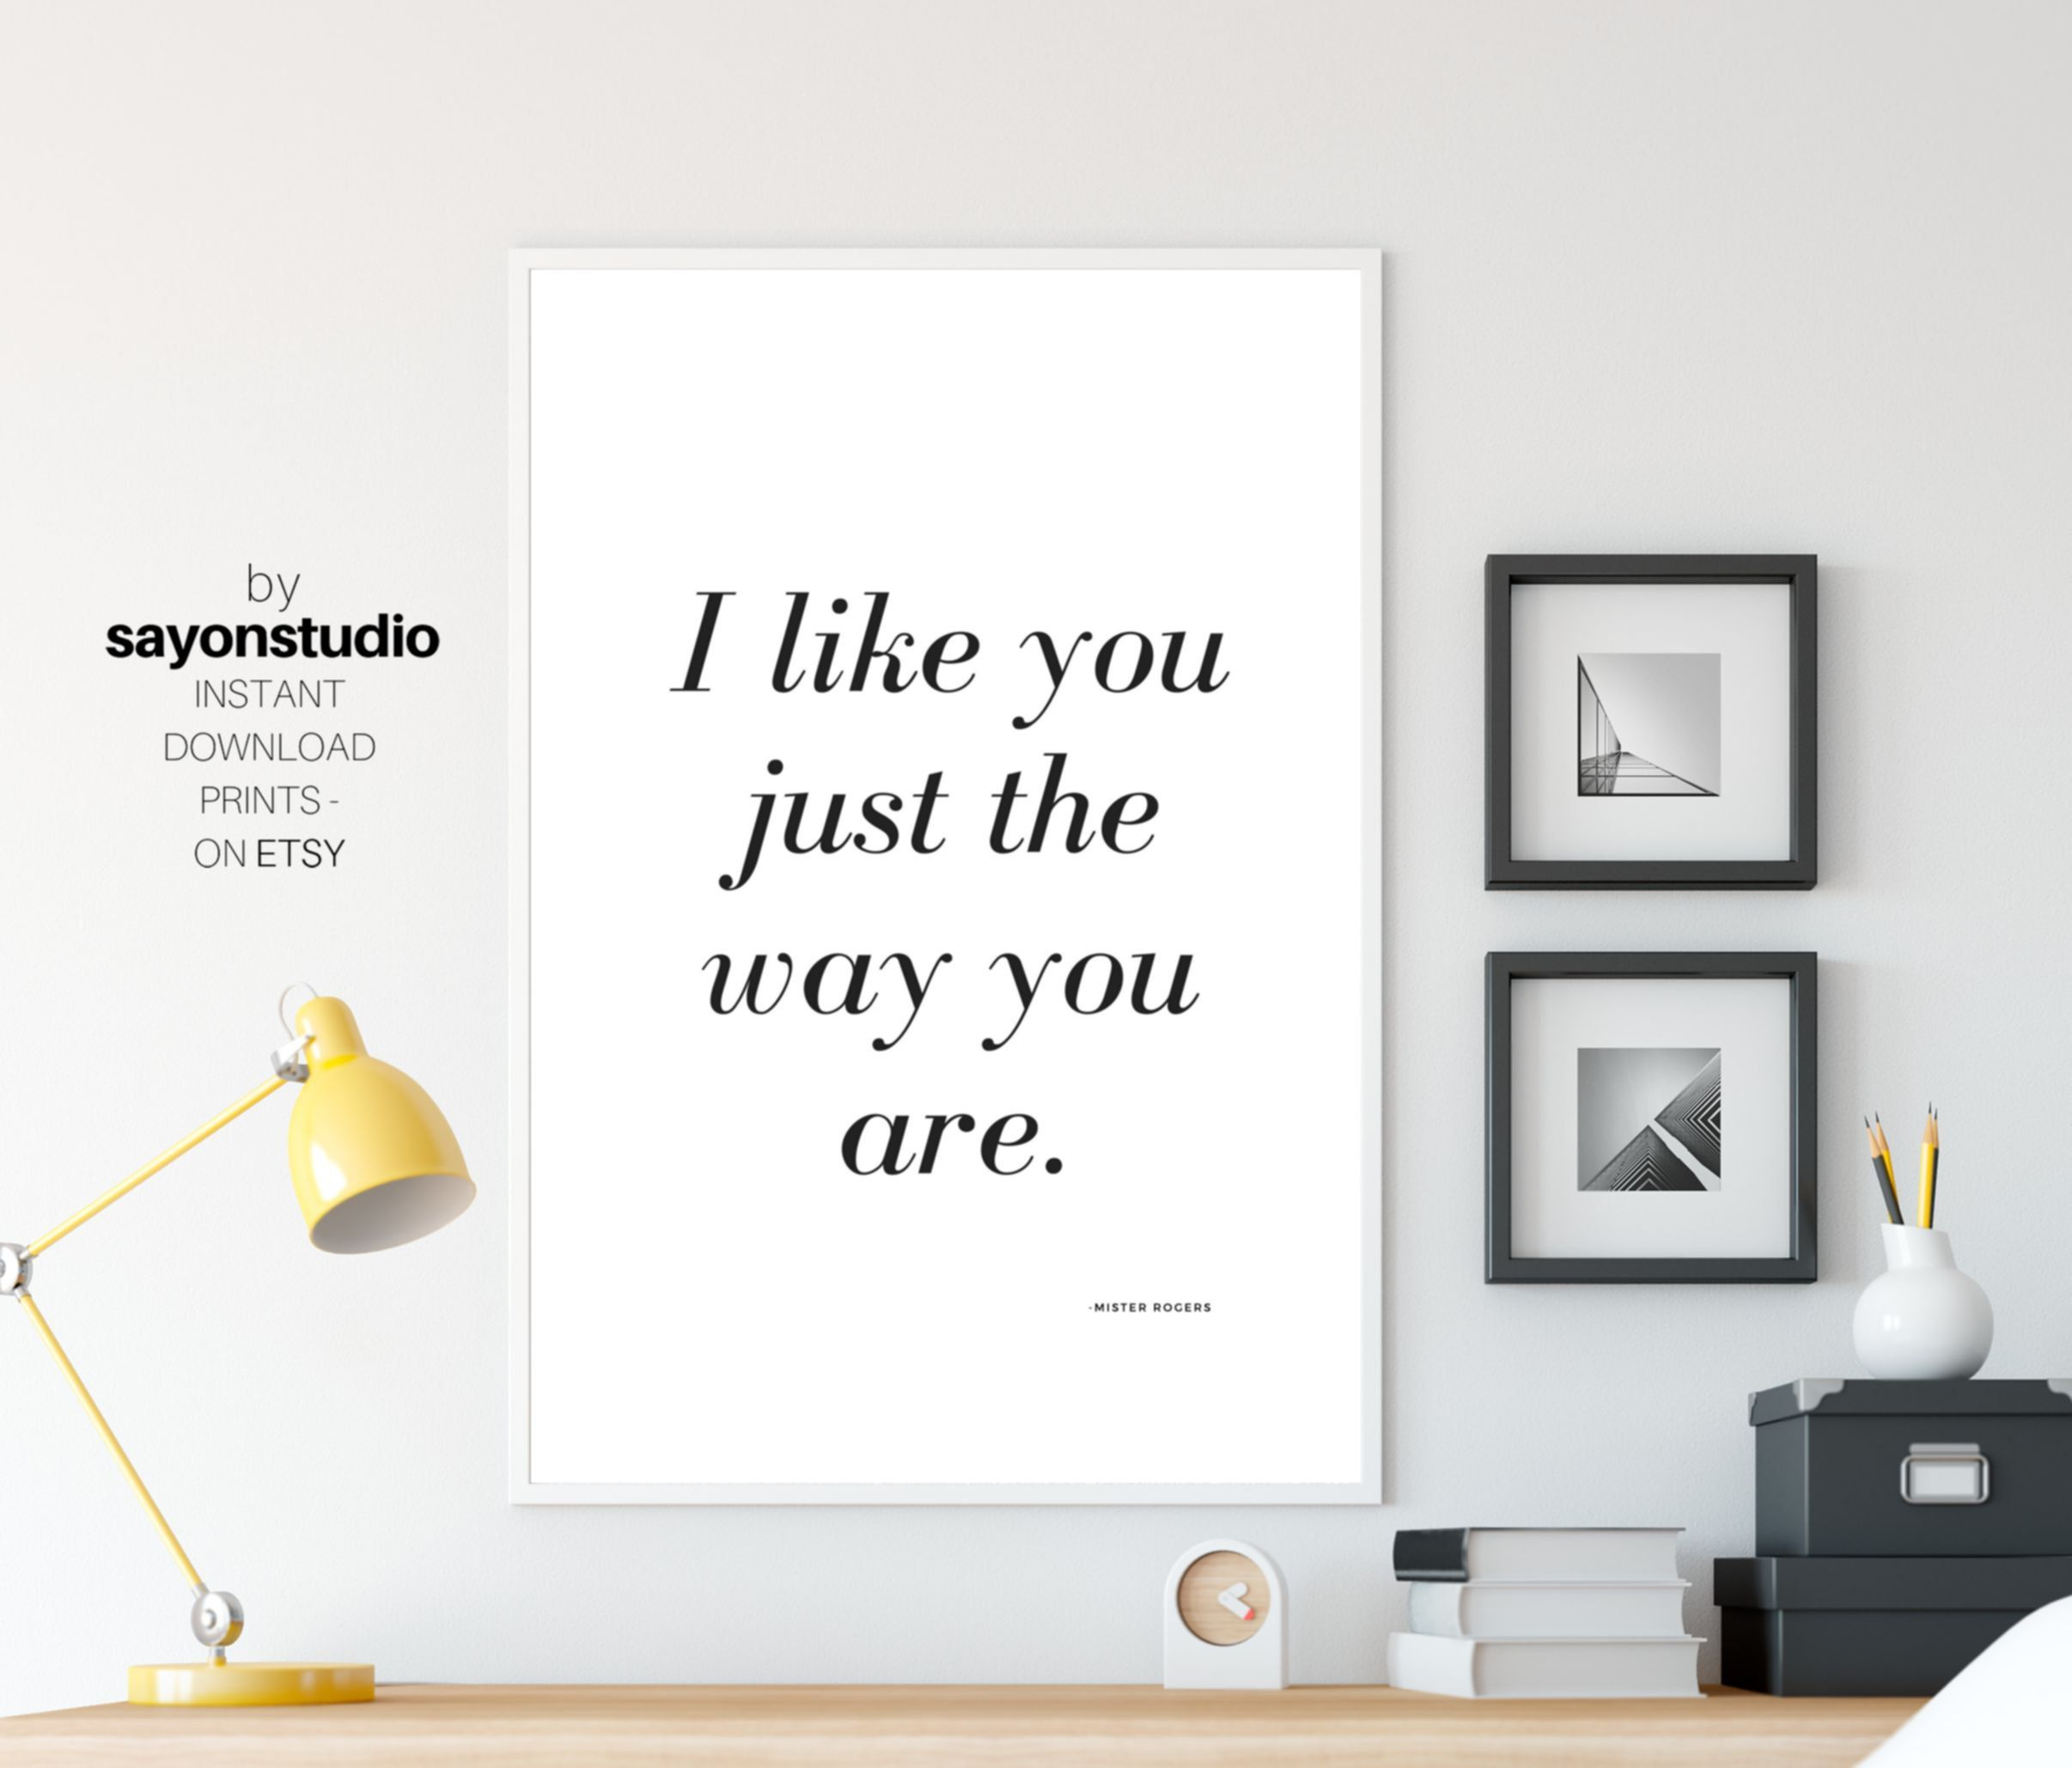 I Like You Just The Way You Are Mr Rogers Quote Print Black And White Home Wall Decor Design Inspirational Wall Prints Simple And Cool Art Quote Prints Wall Decor Design Wall Prints